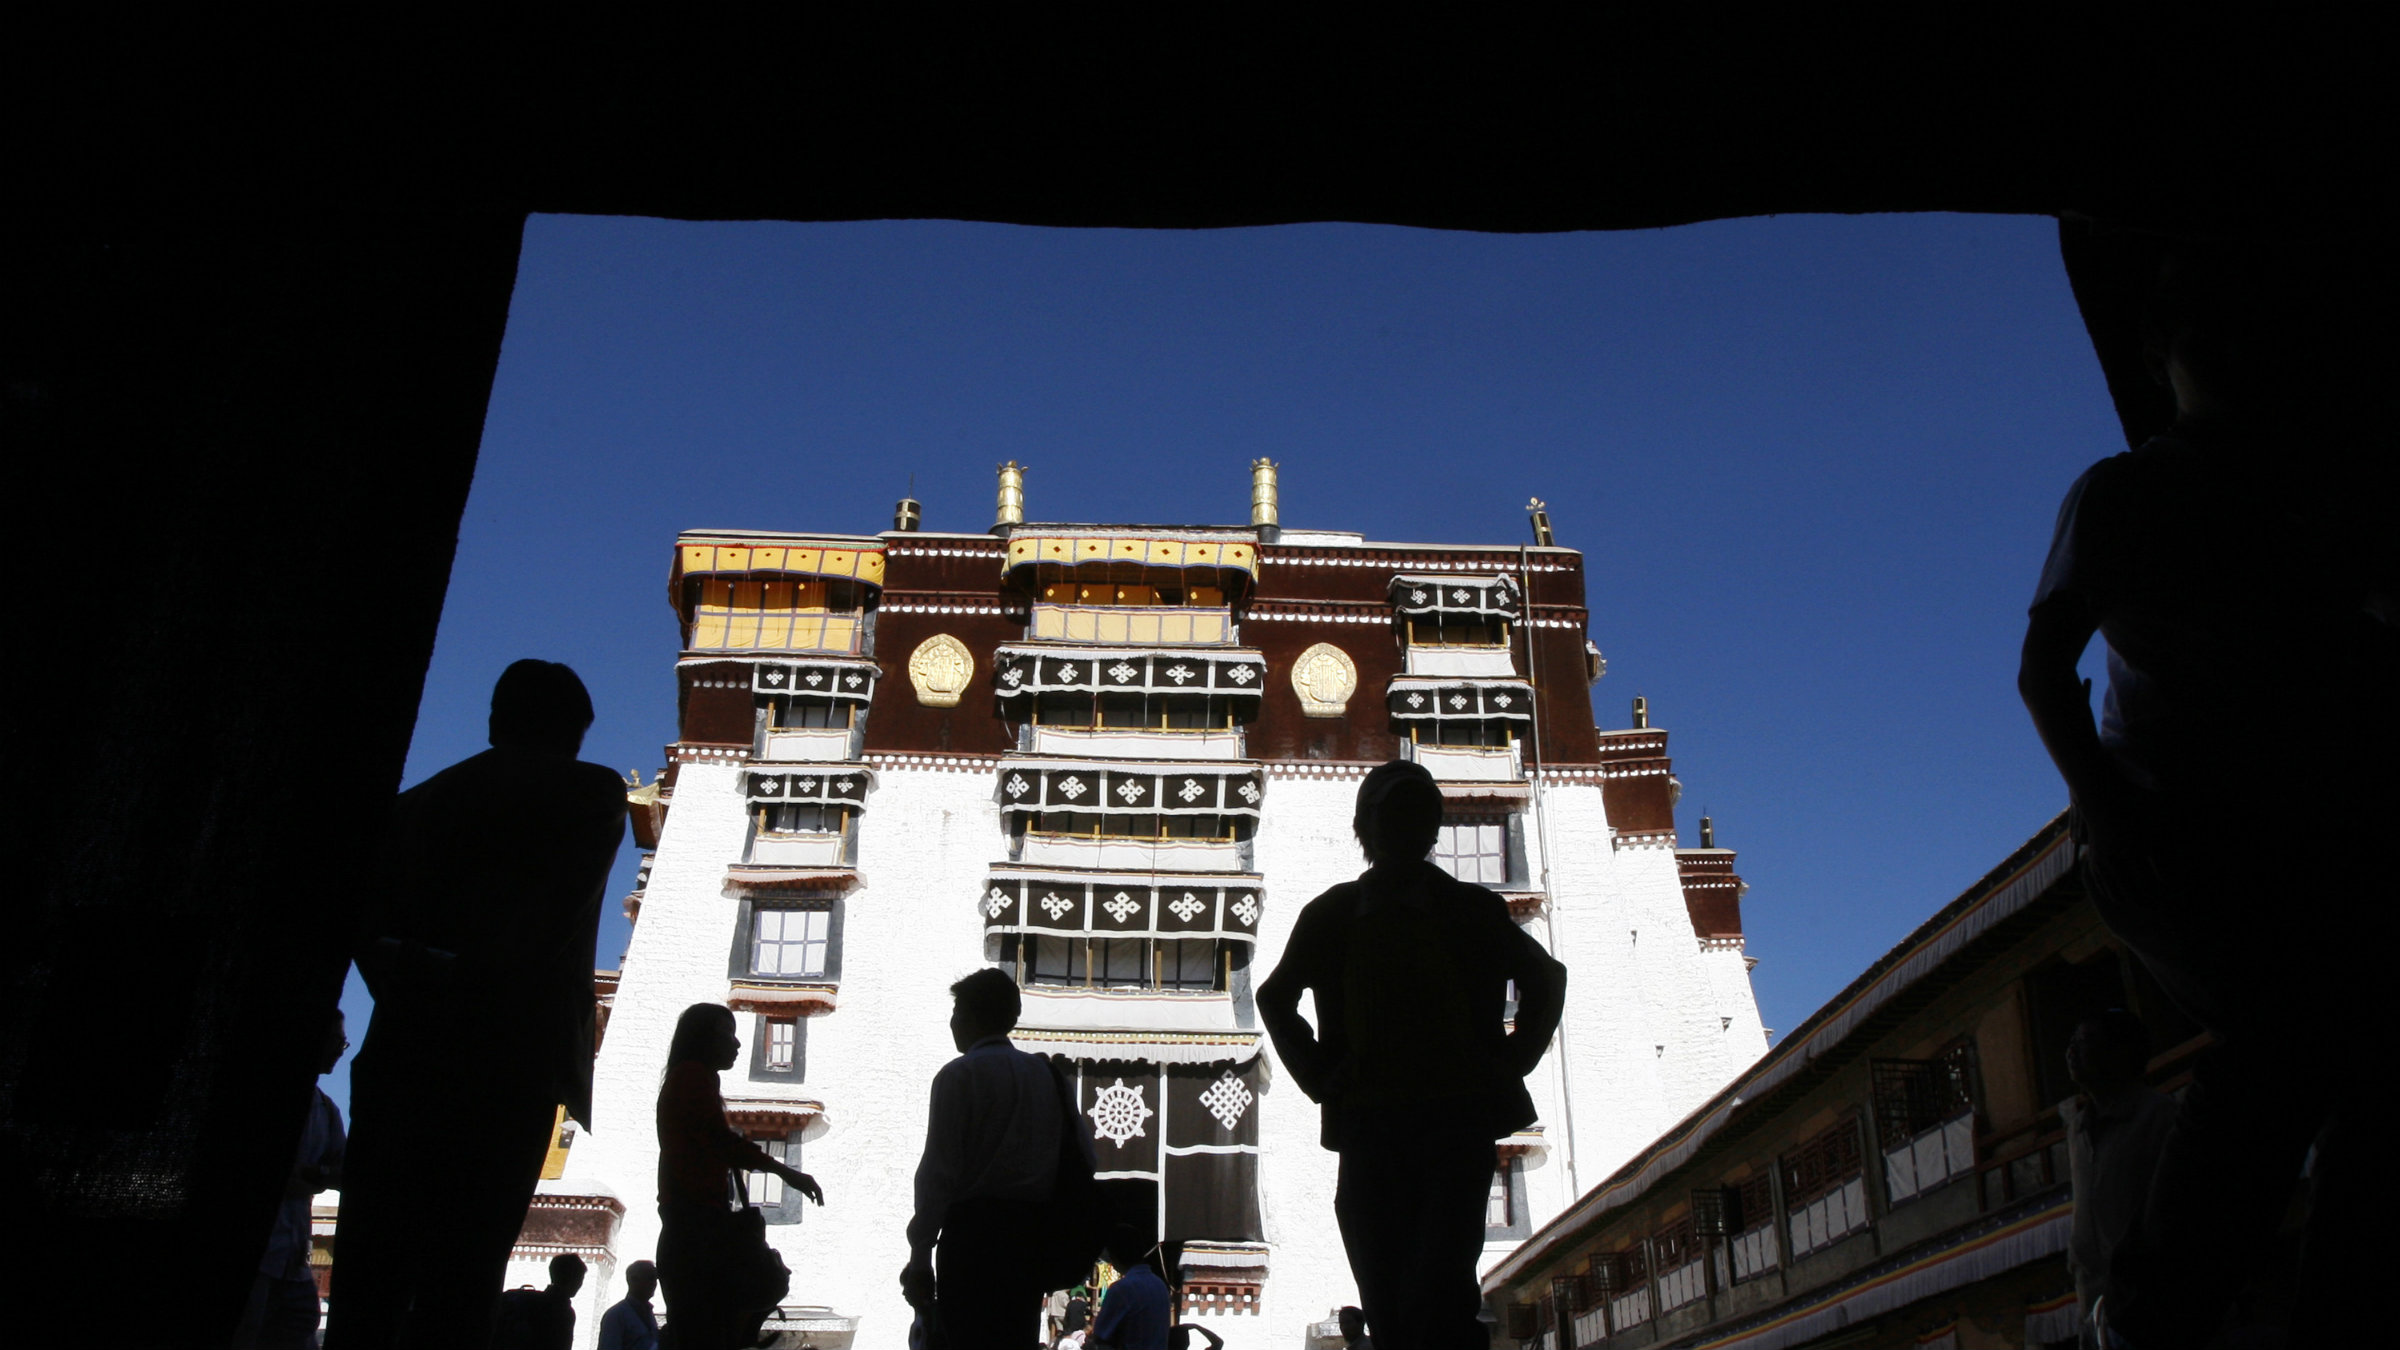 tibet -- First come the tourists, then the private equity bankers.